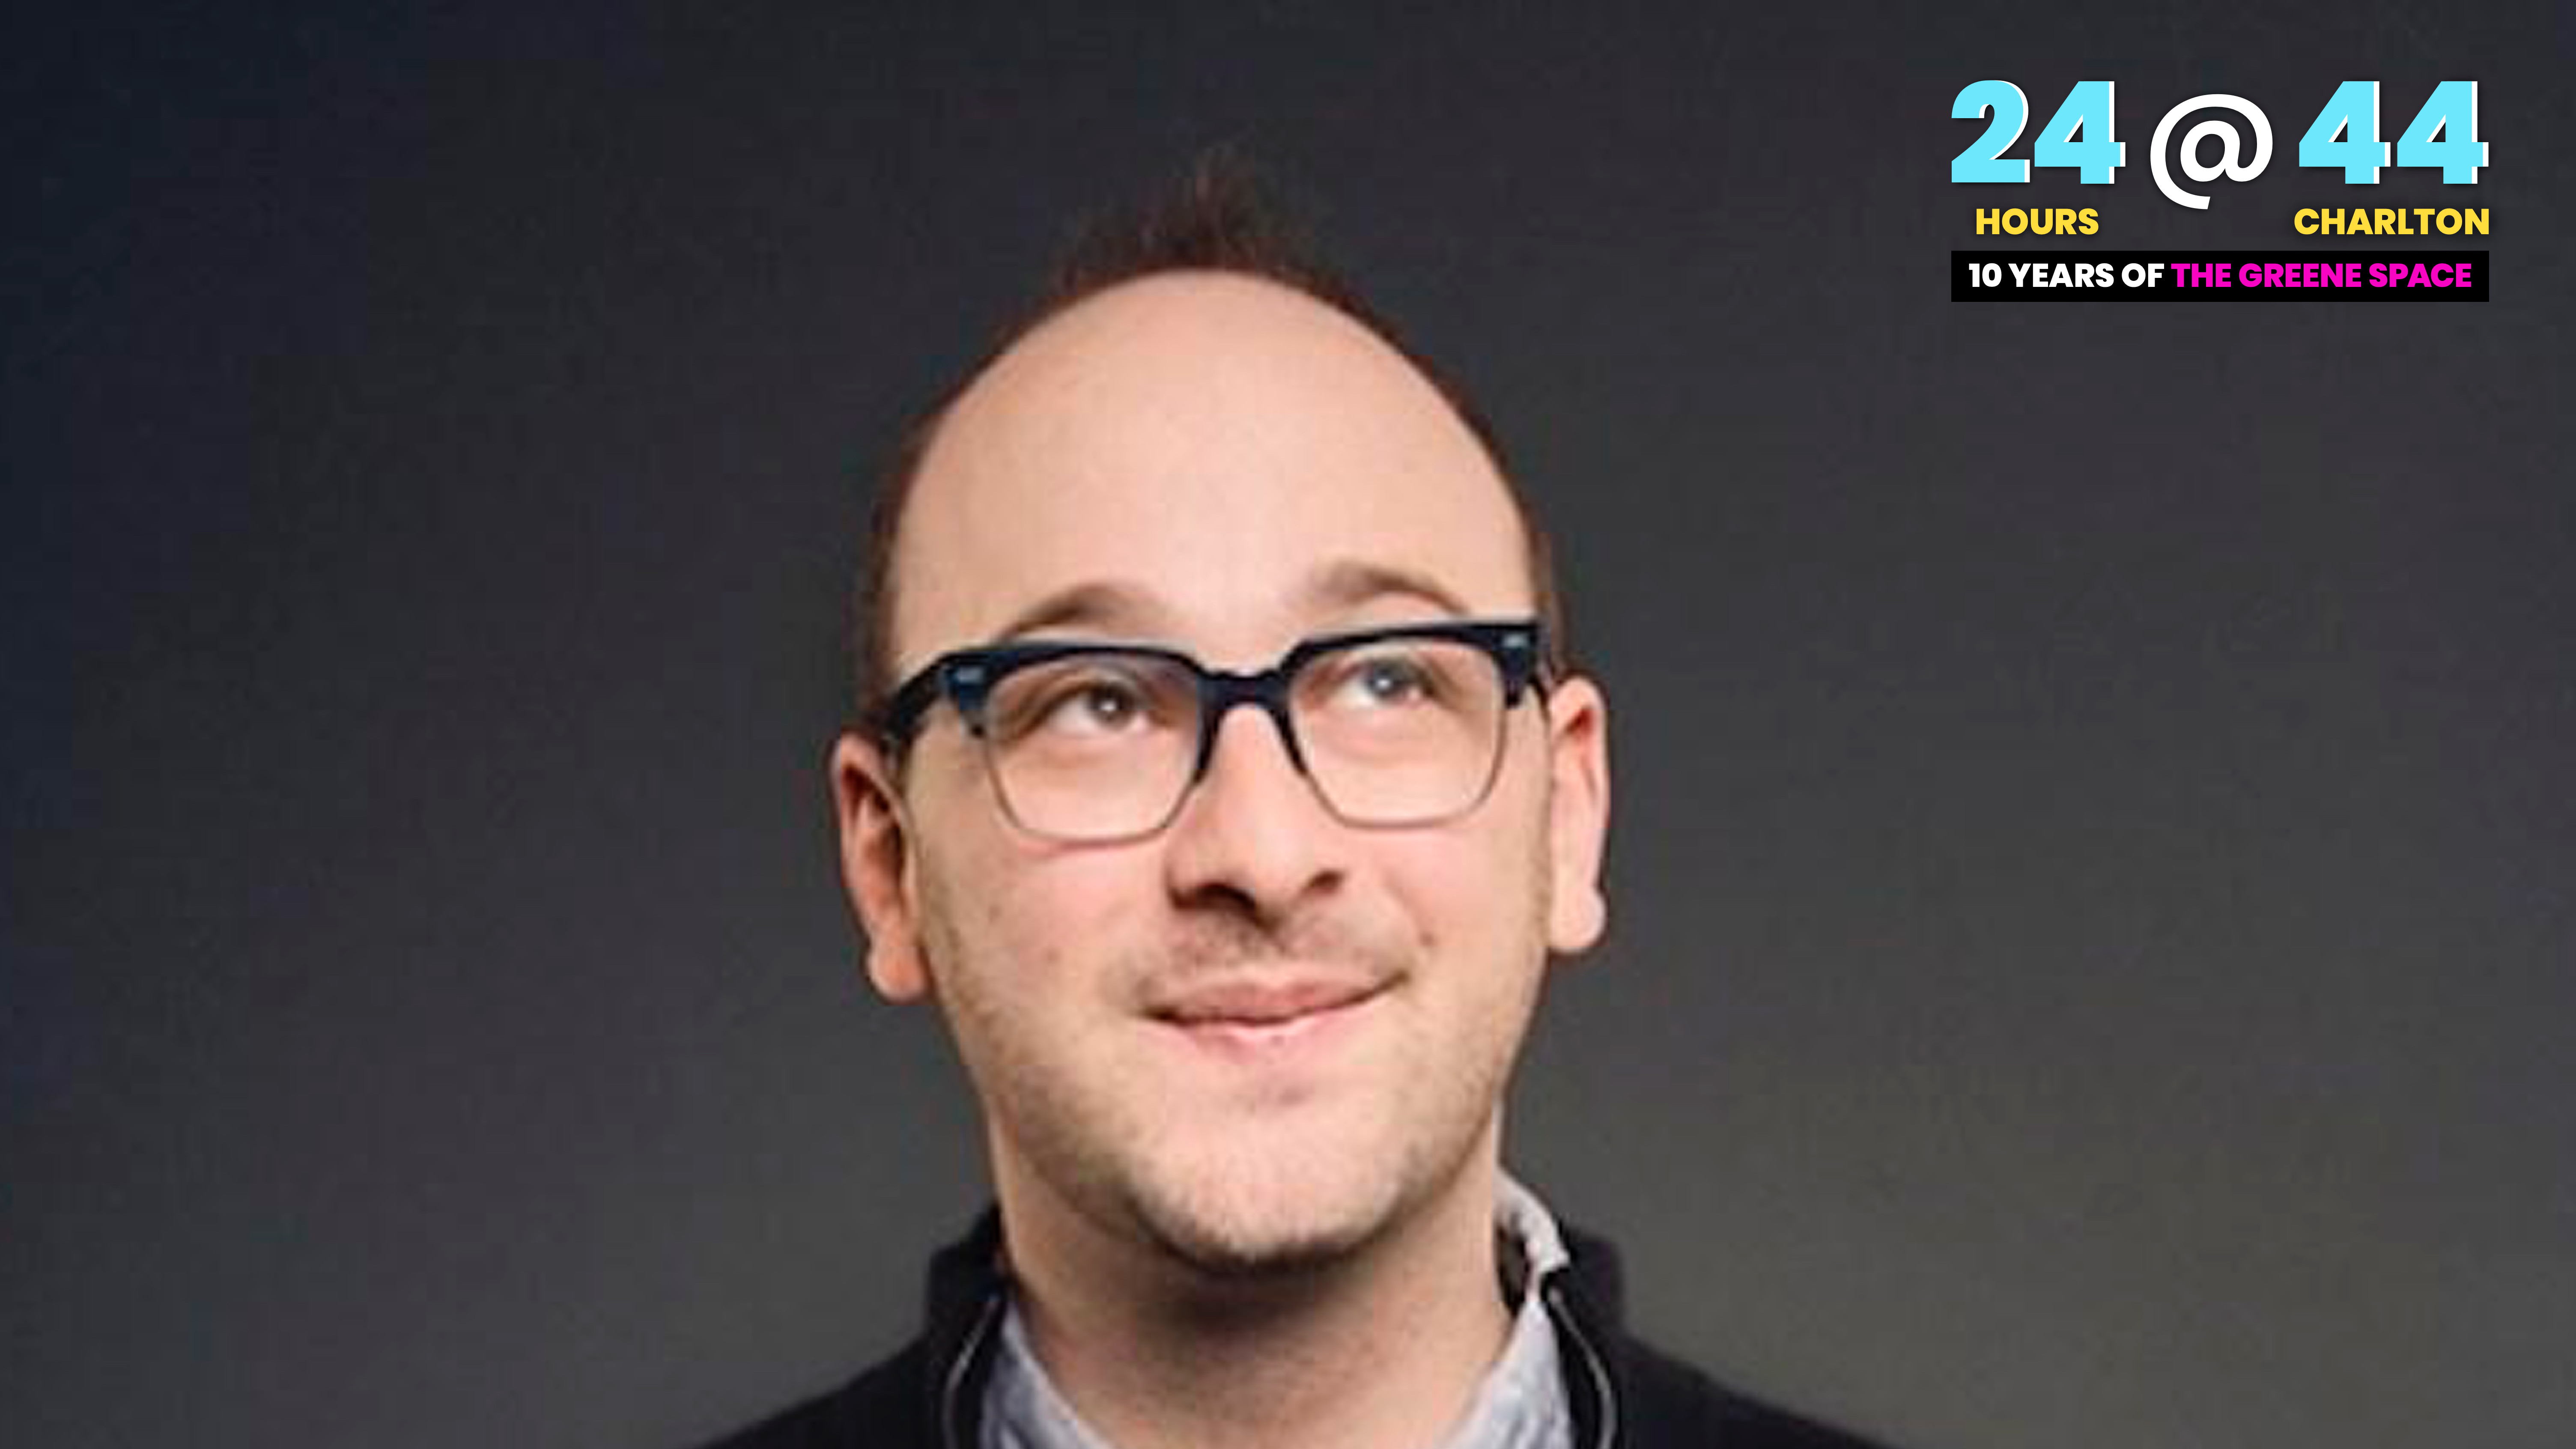 Never Have I Ever Comedy Hour Hosted by Josh Gondelman